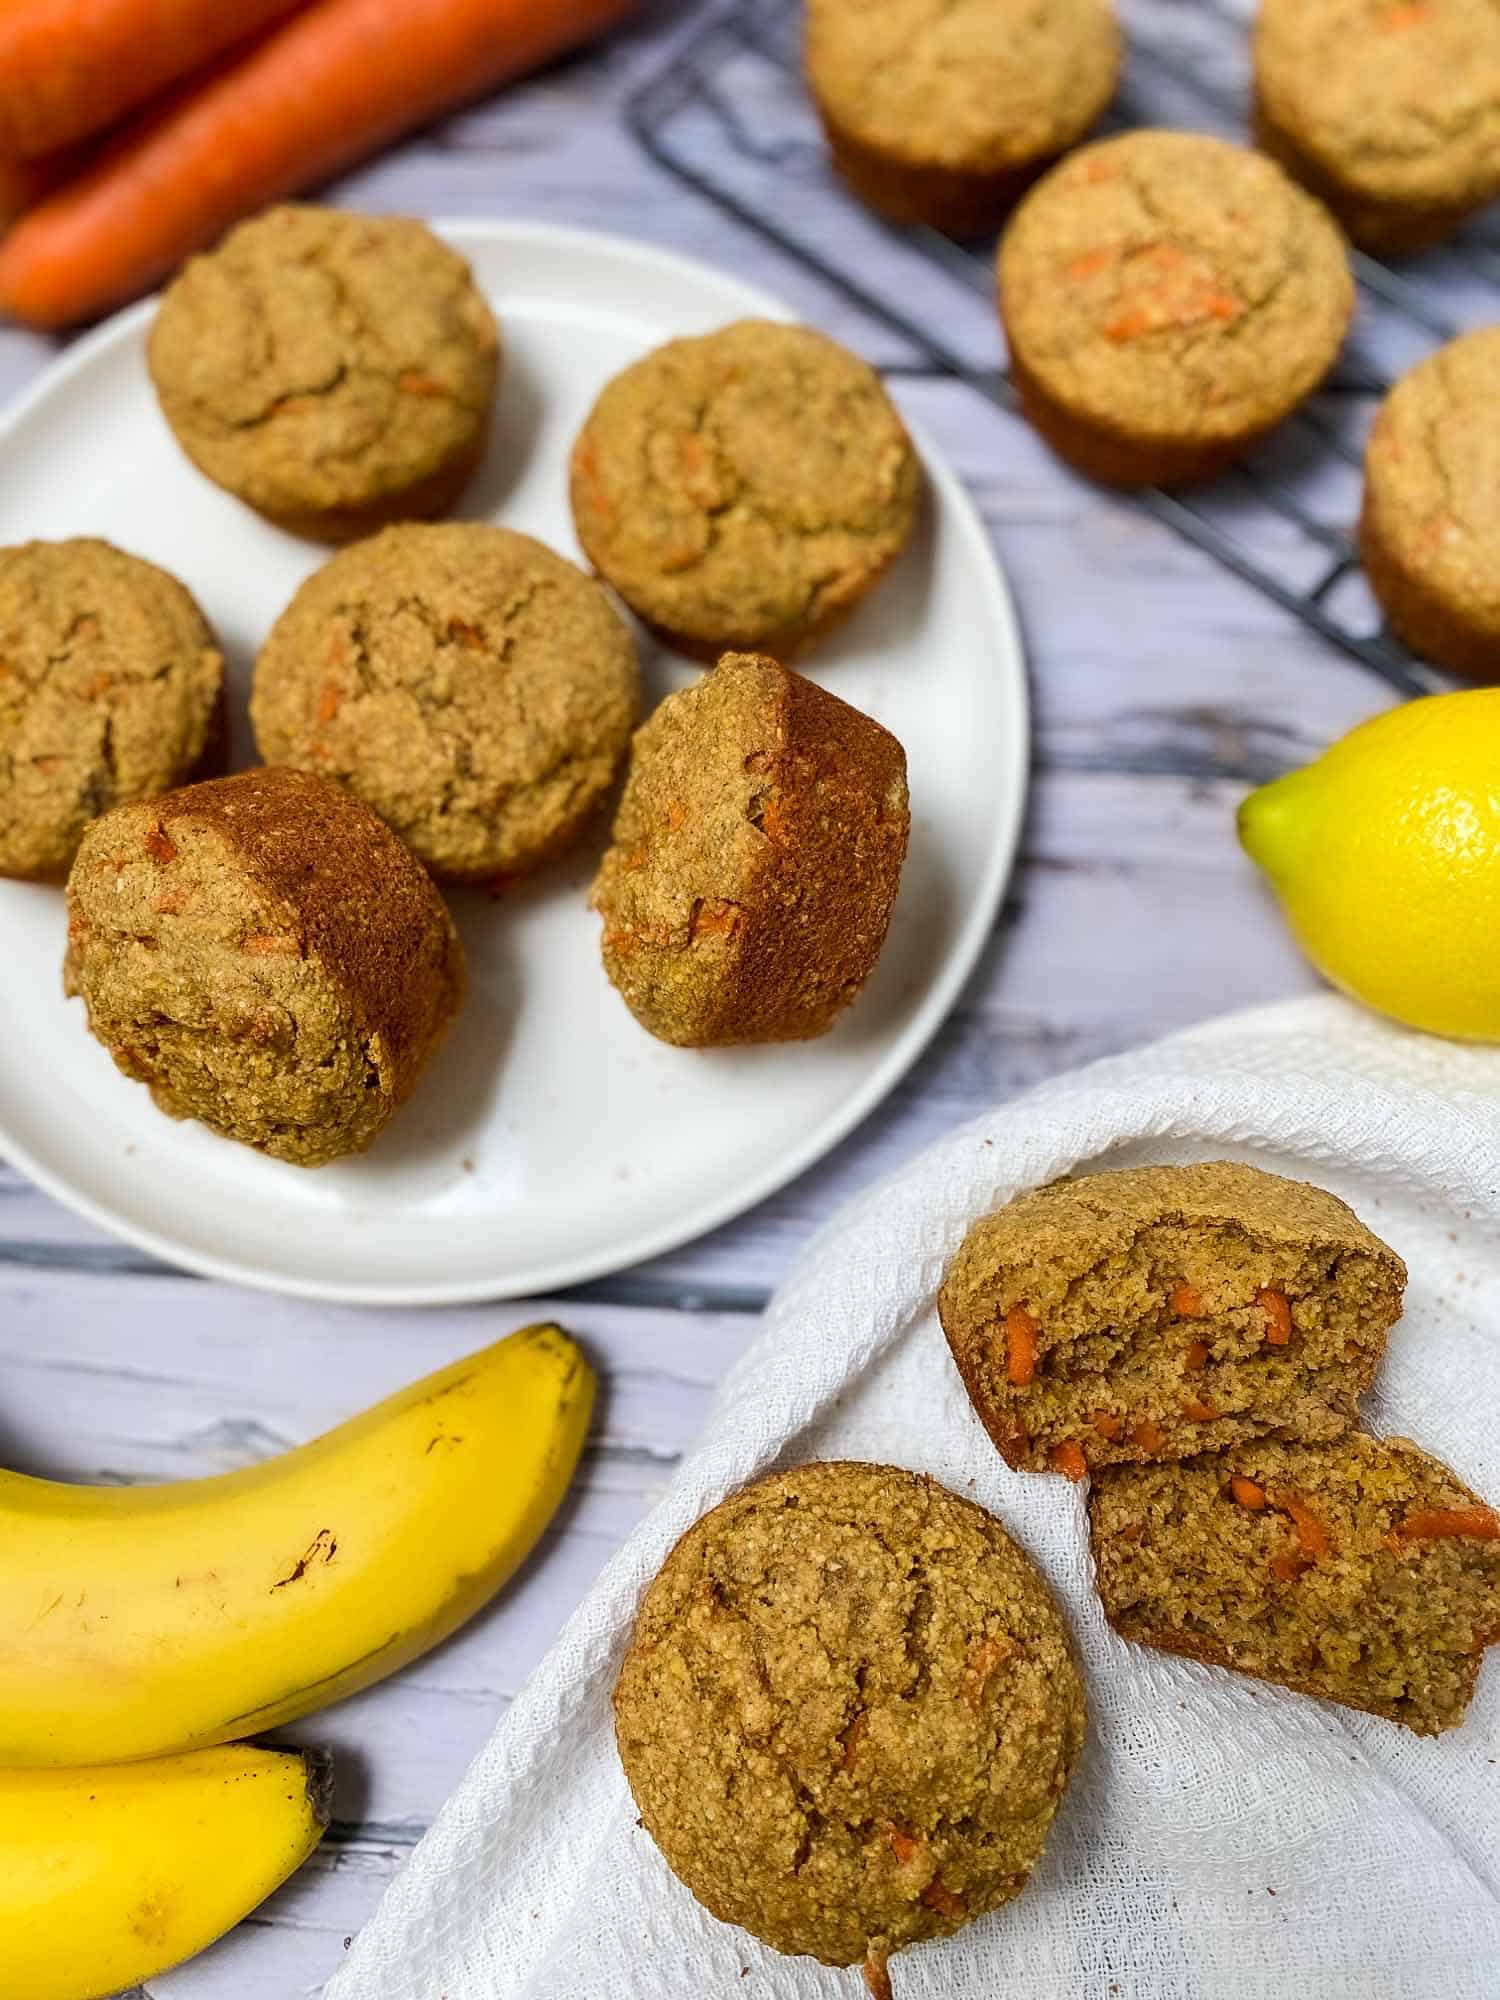 plate of banana carrot muffins with banana and lemon beside it